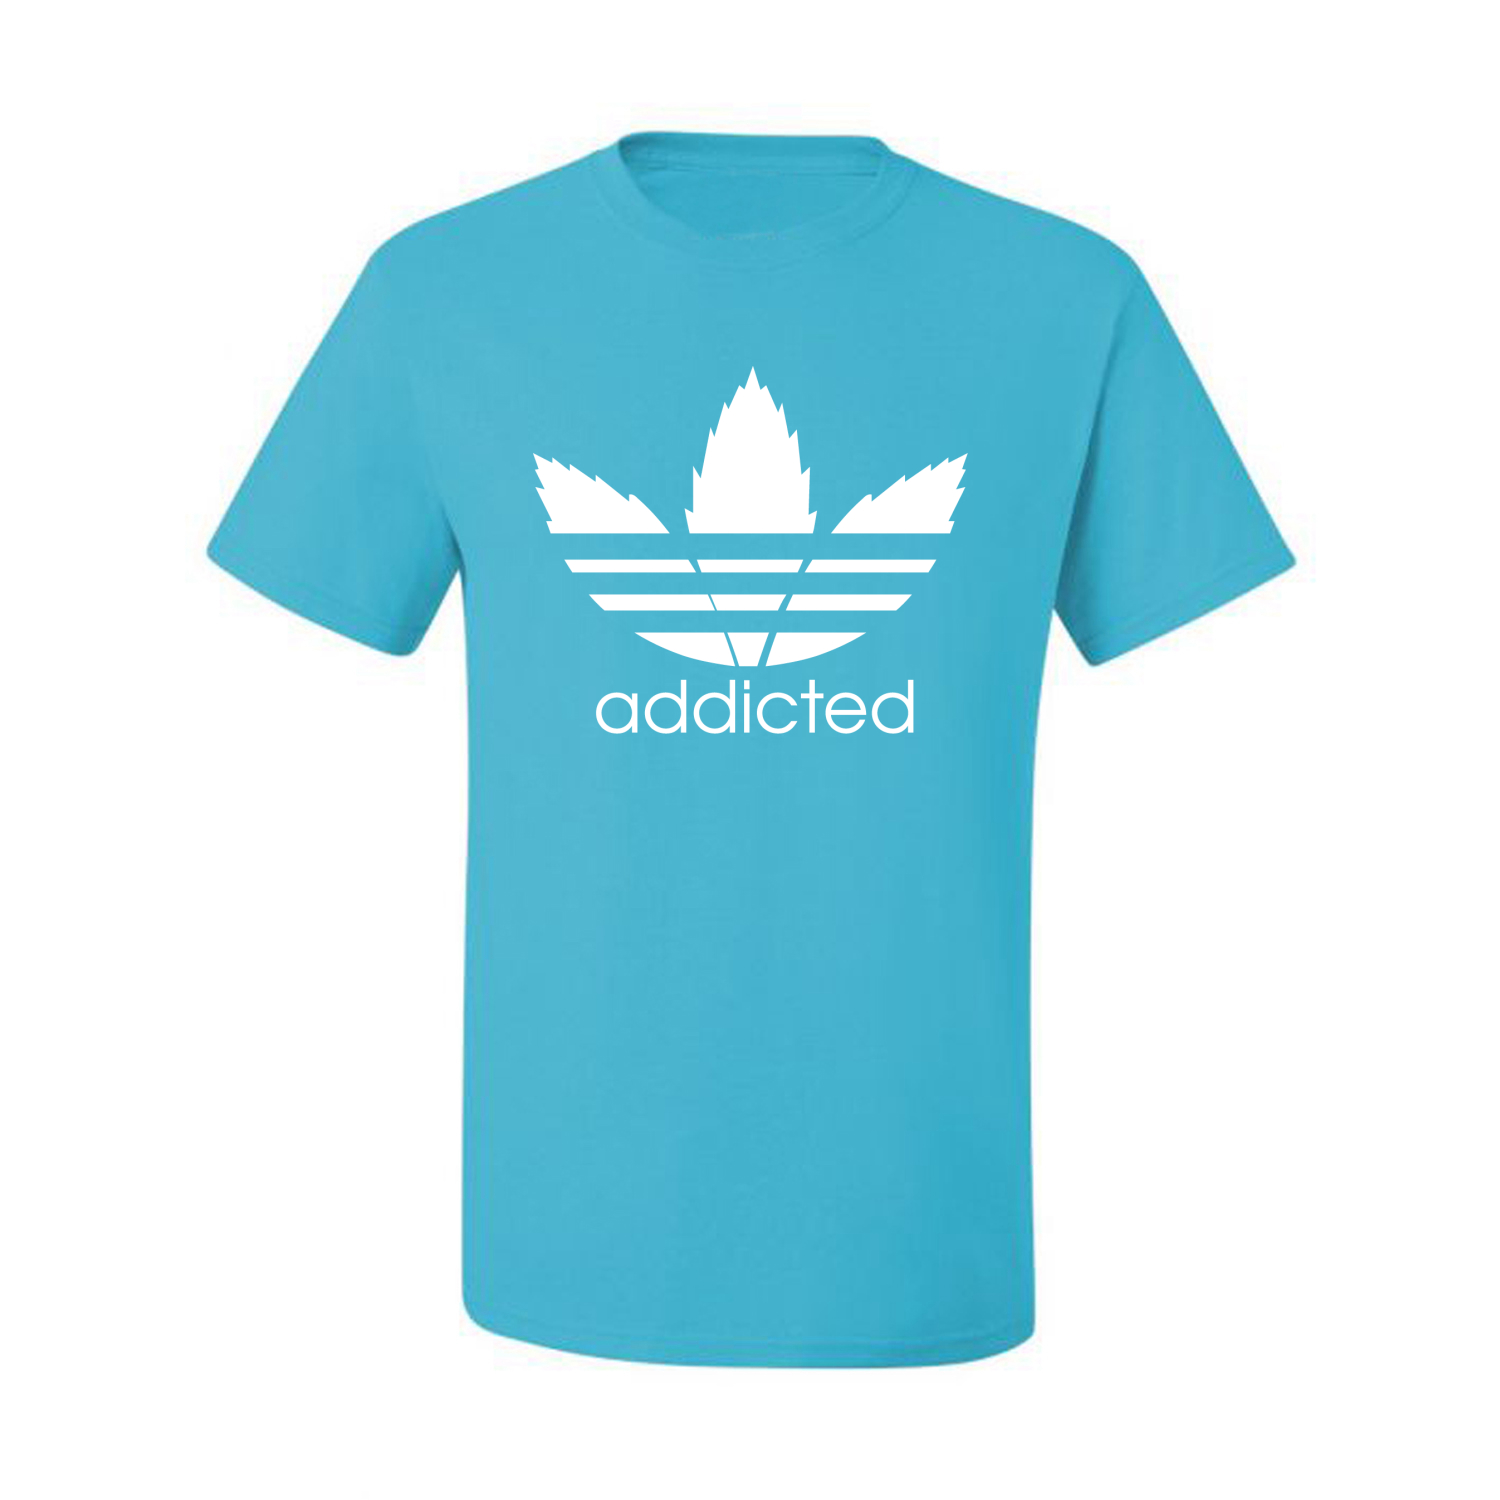 Addicted-White-Pot-Leaf-Mens-Weed-T-Shirt-Graphic-Parody-Tee thumbnail 20